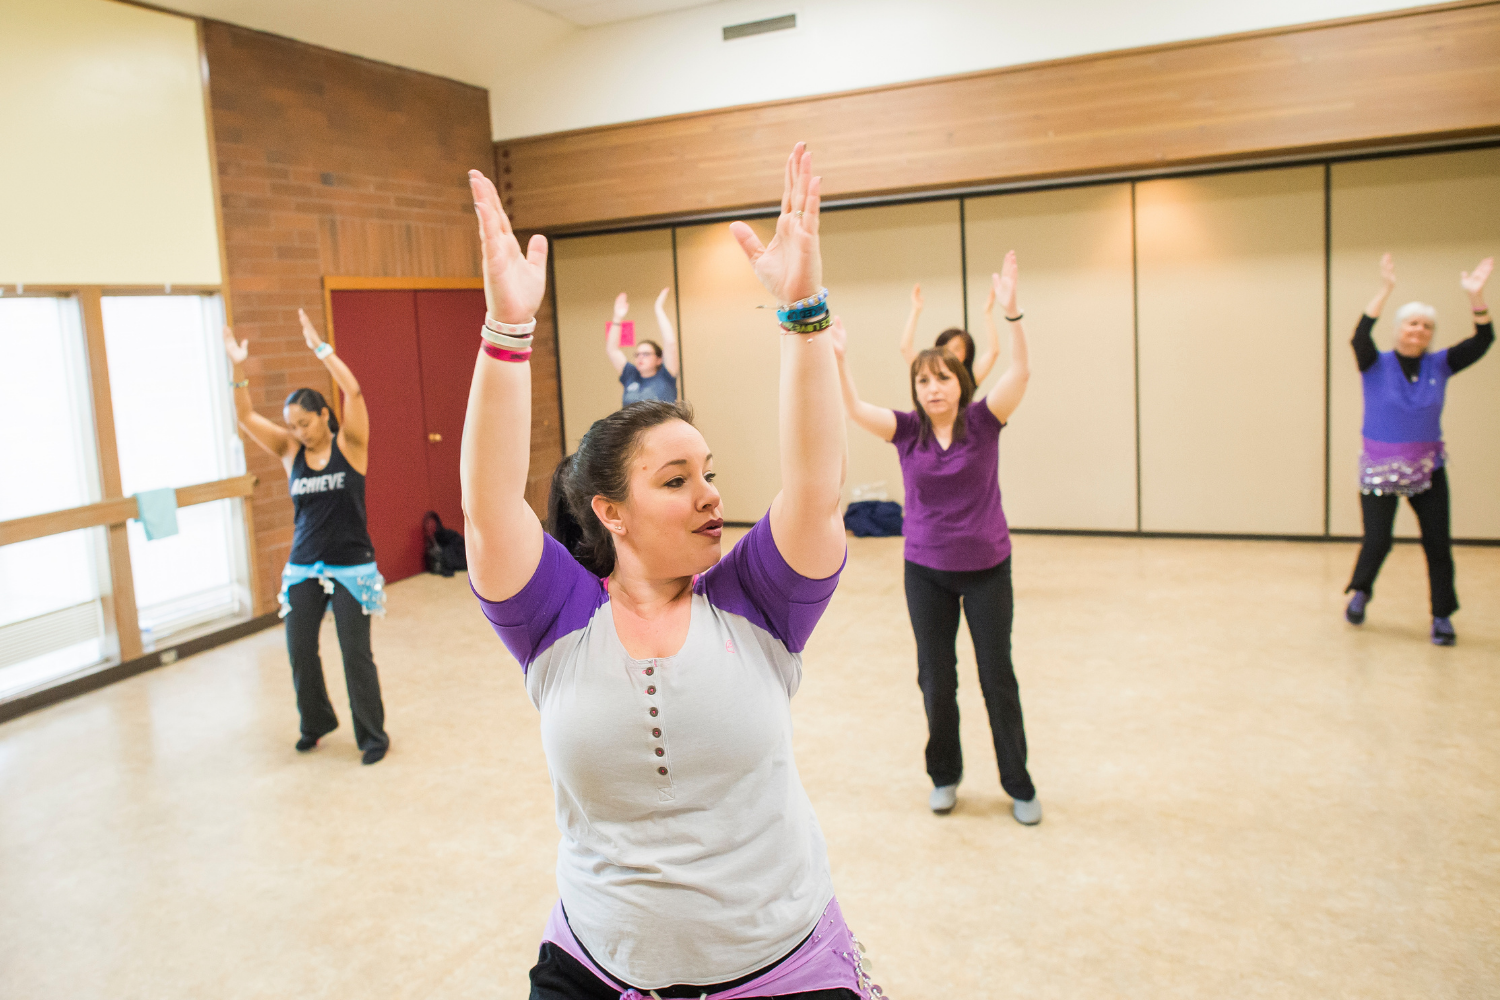 Zumba exercise class at Fife Community Center